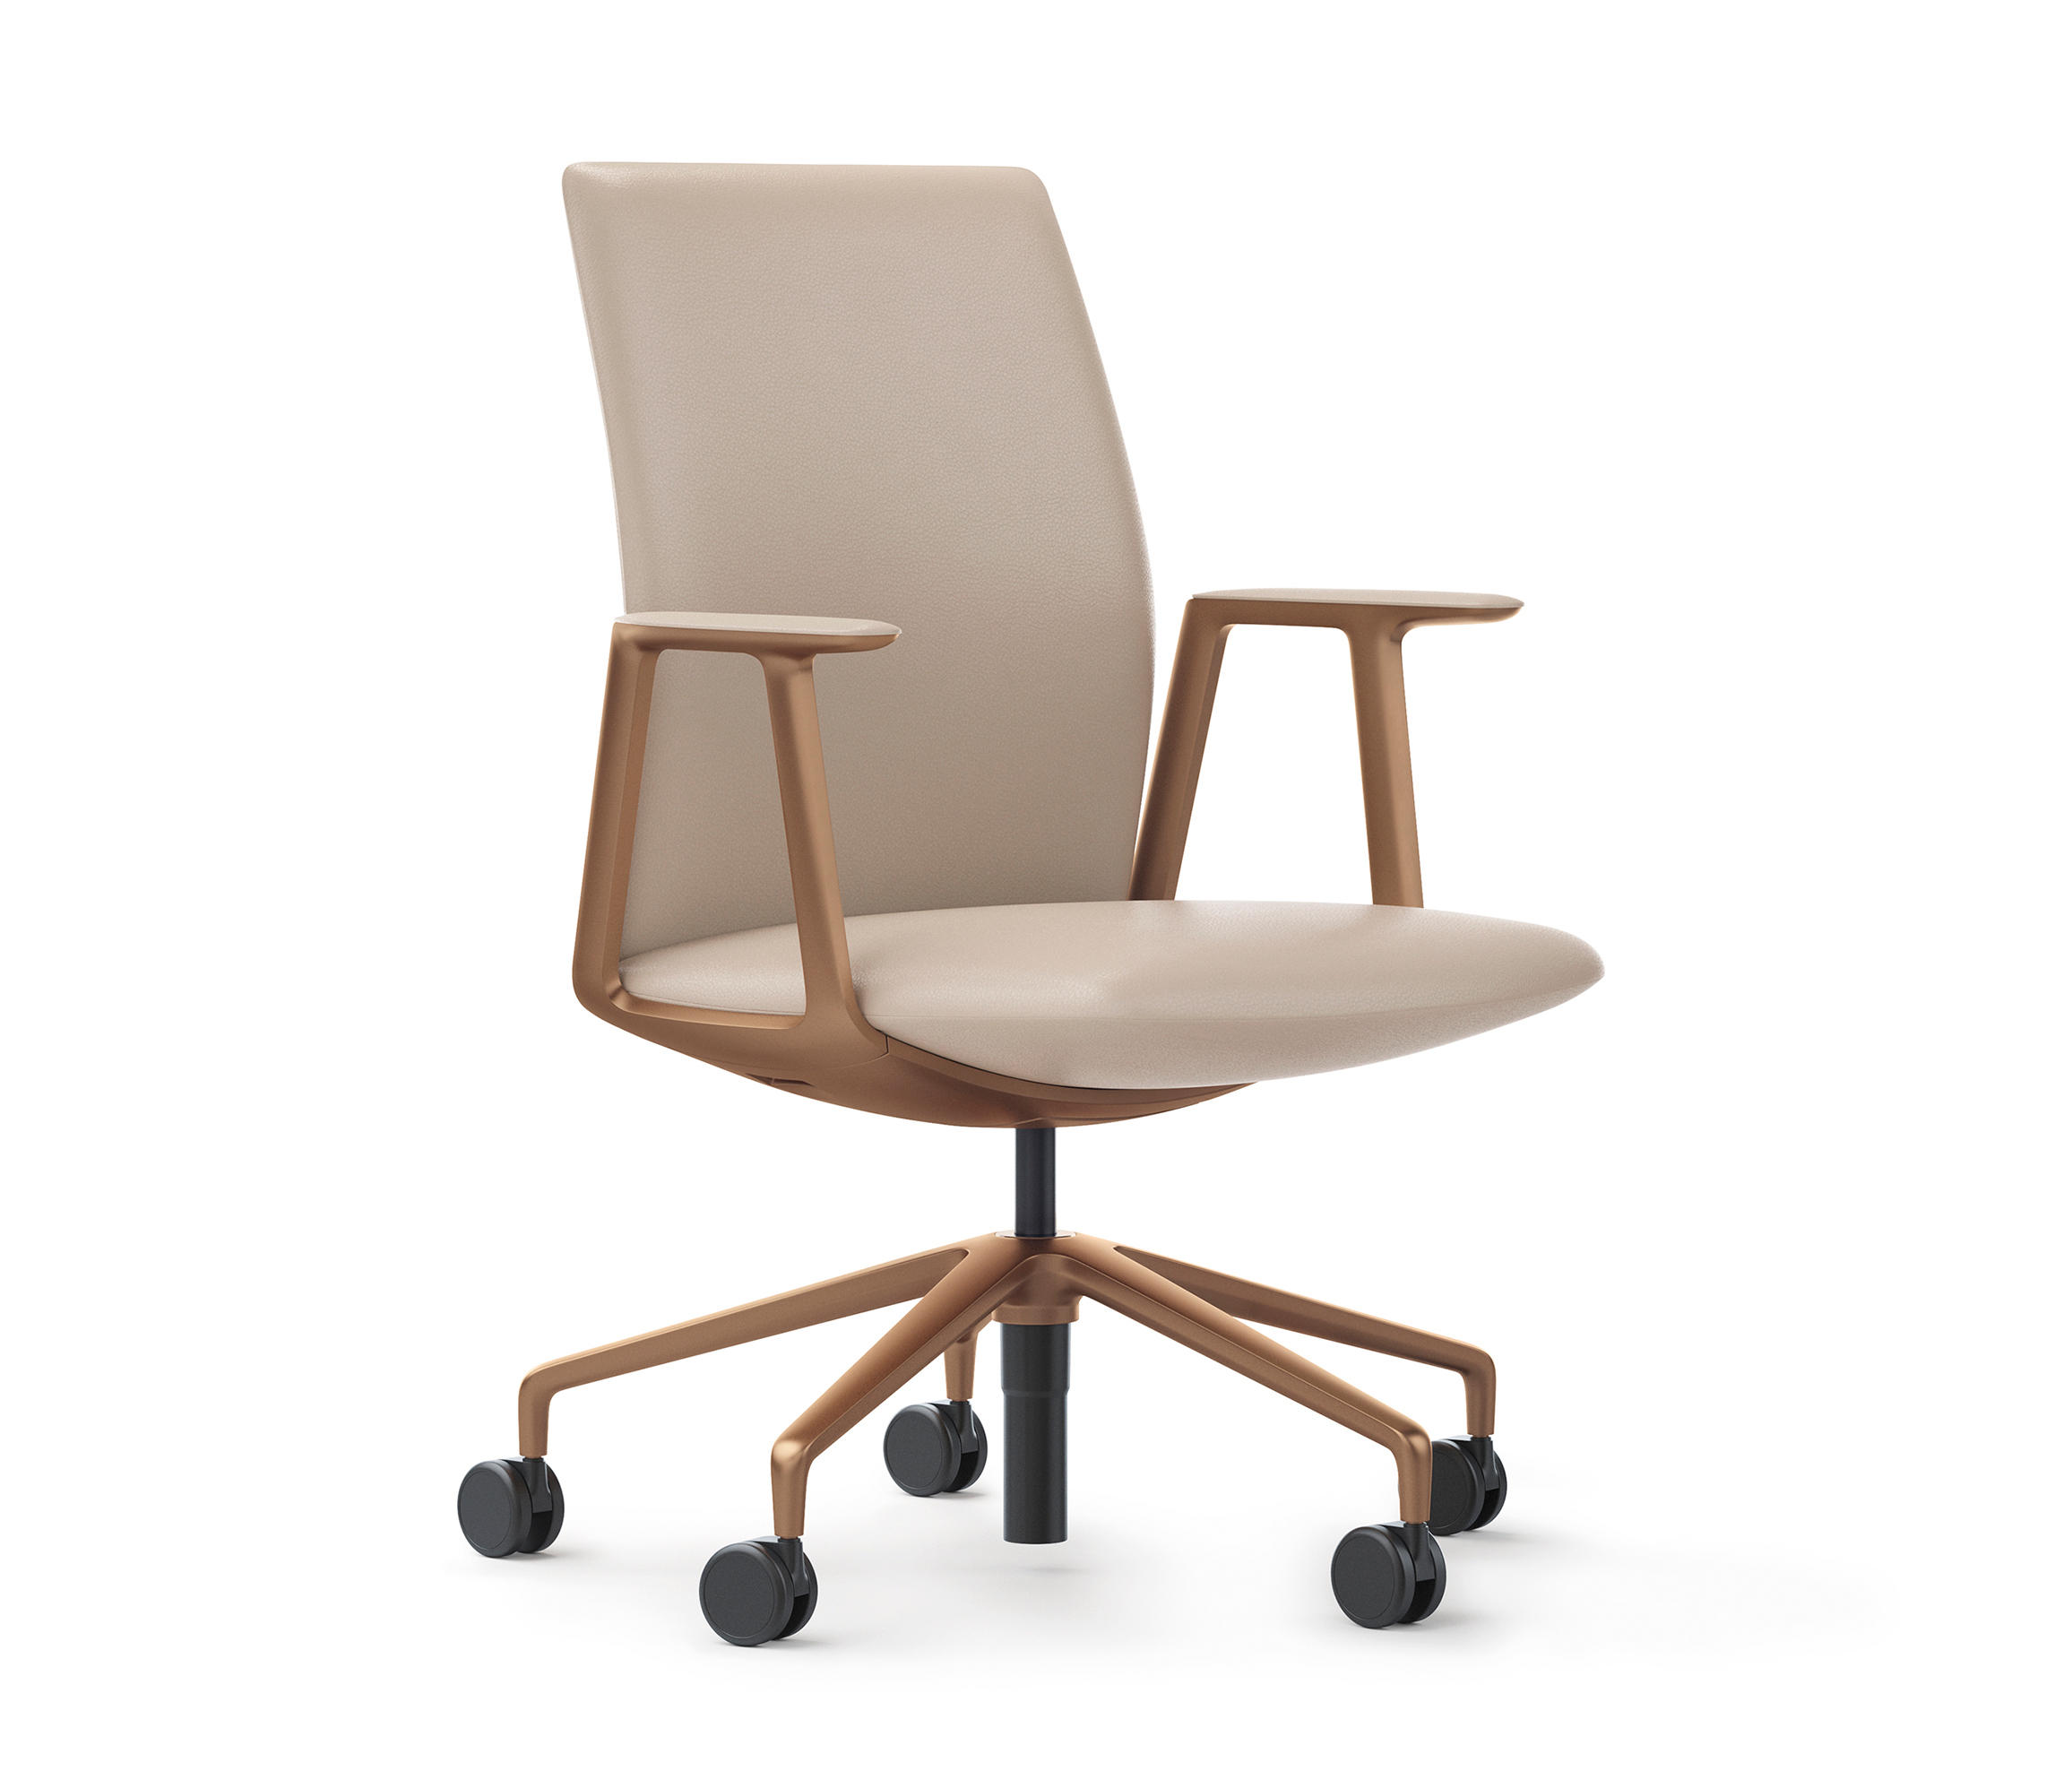 Tremendous Orign 72135 Chairs From Keilhauer Architonic Caraccident5 Cool Chair Designs And Ideas Caraccident5Info